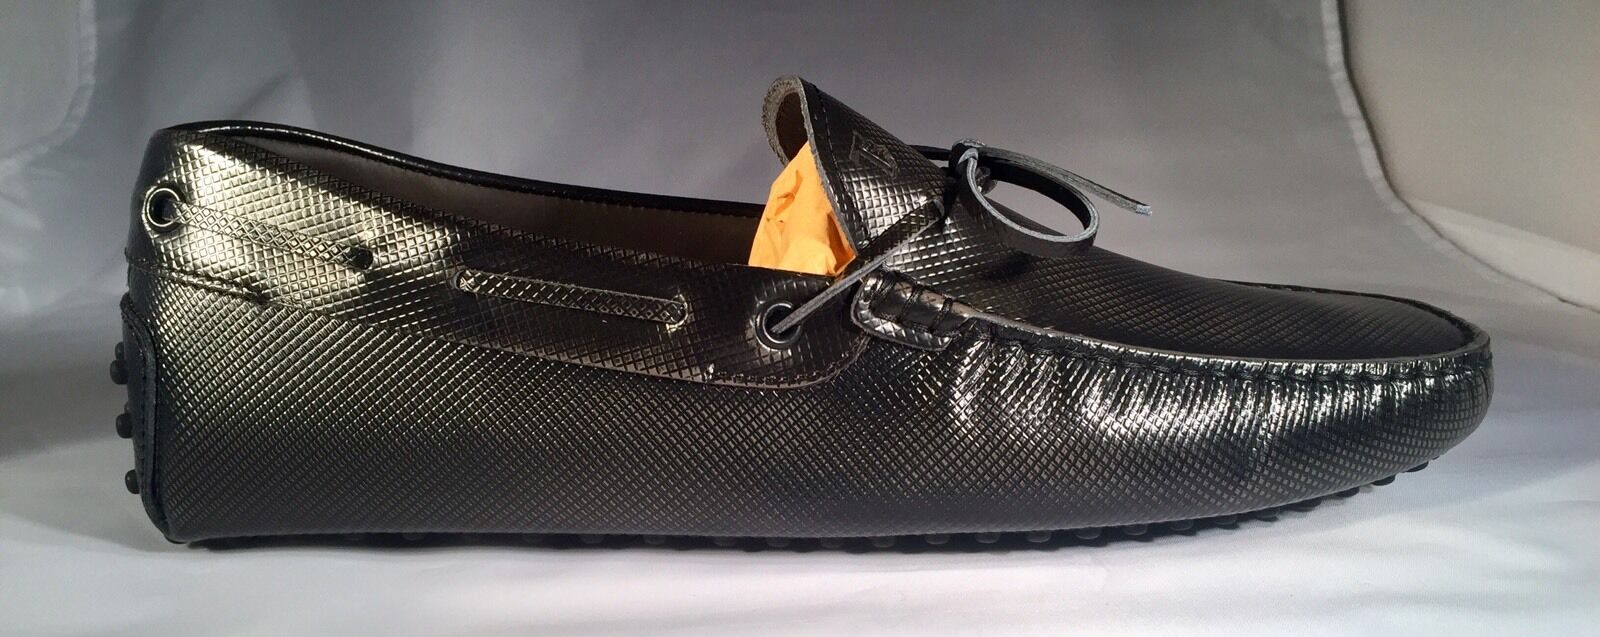 550  Tod's Dark Gray Gommini Drivers Size 12.5   12.5 Size Made In Italy c17302